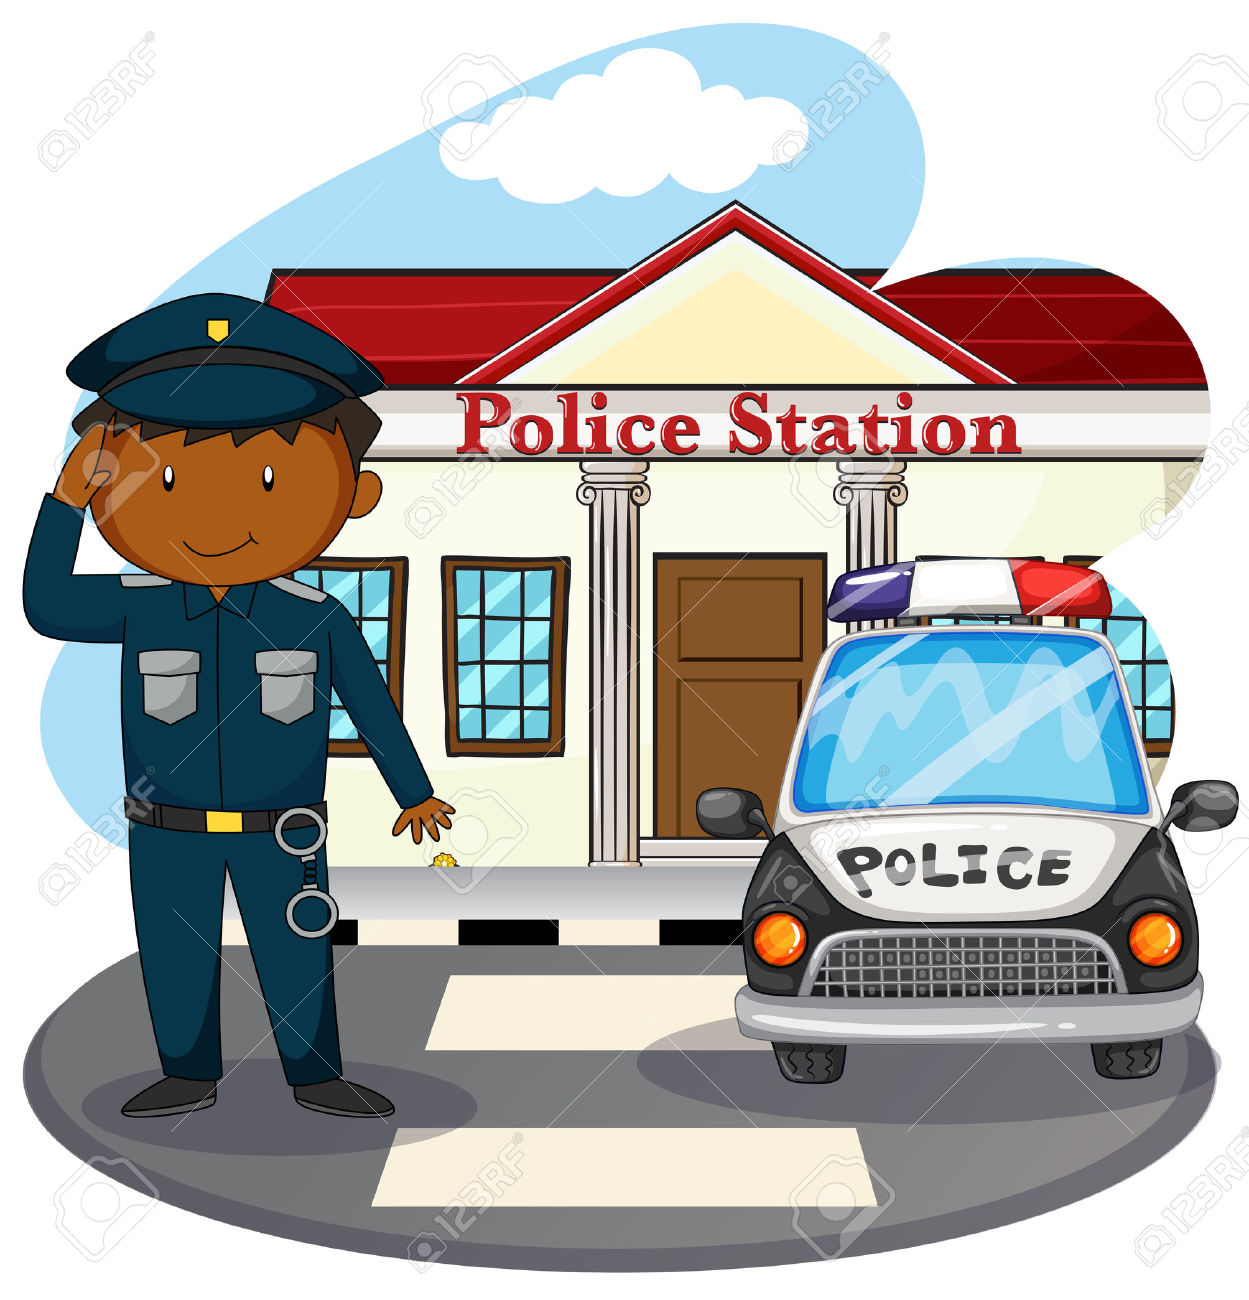 Police station building clipart clipart freeuse library Policeman Saluting In Front Of Police Station Illustration Royalty ... clipart freeuse library